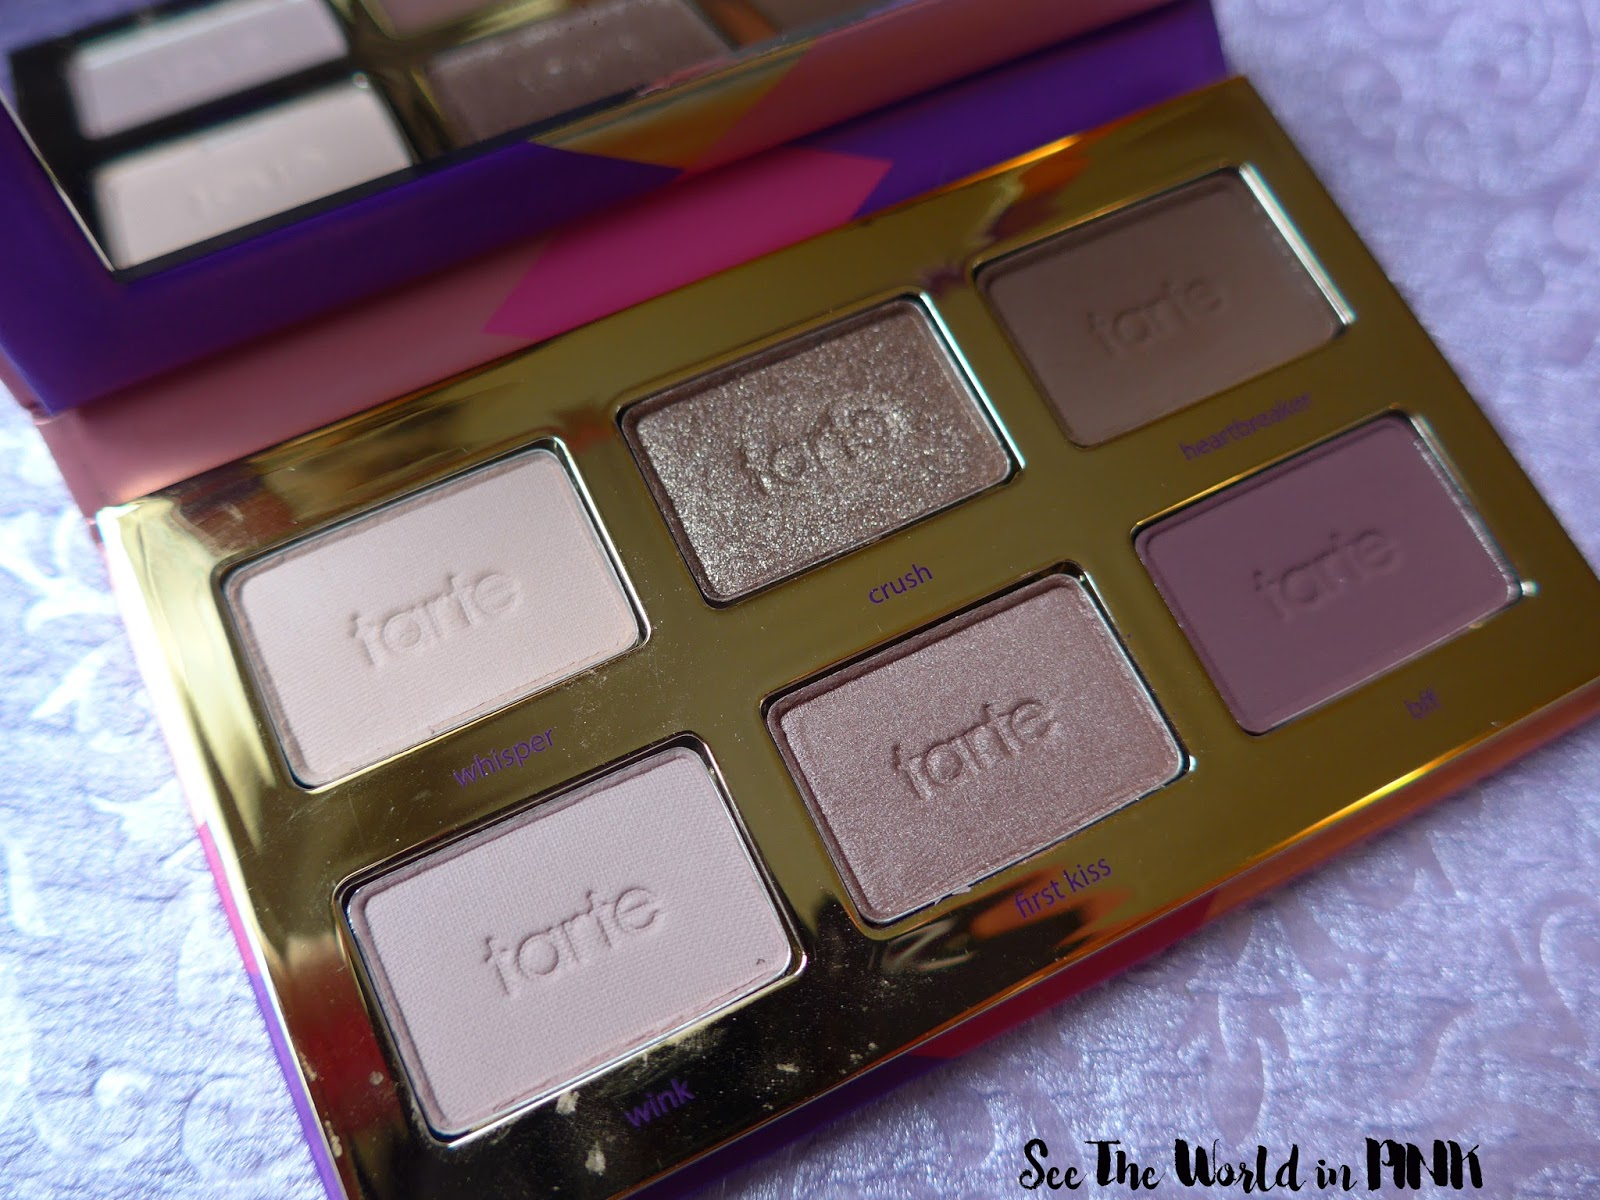 Tarte Tartelette Tease Eyeshadow Palette - Review, Swatches, and Makeup Looks